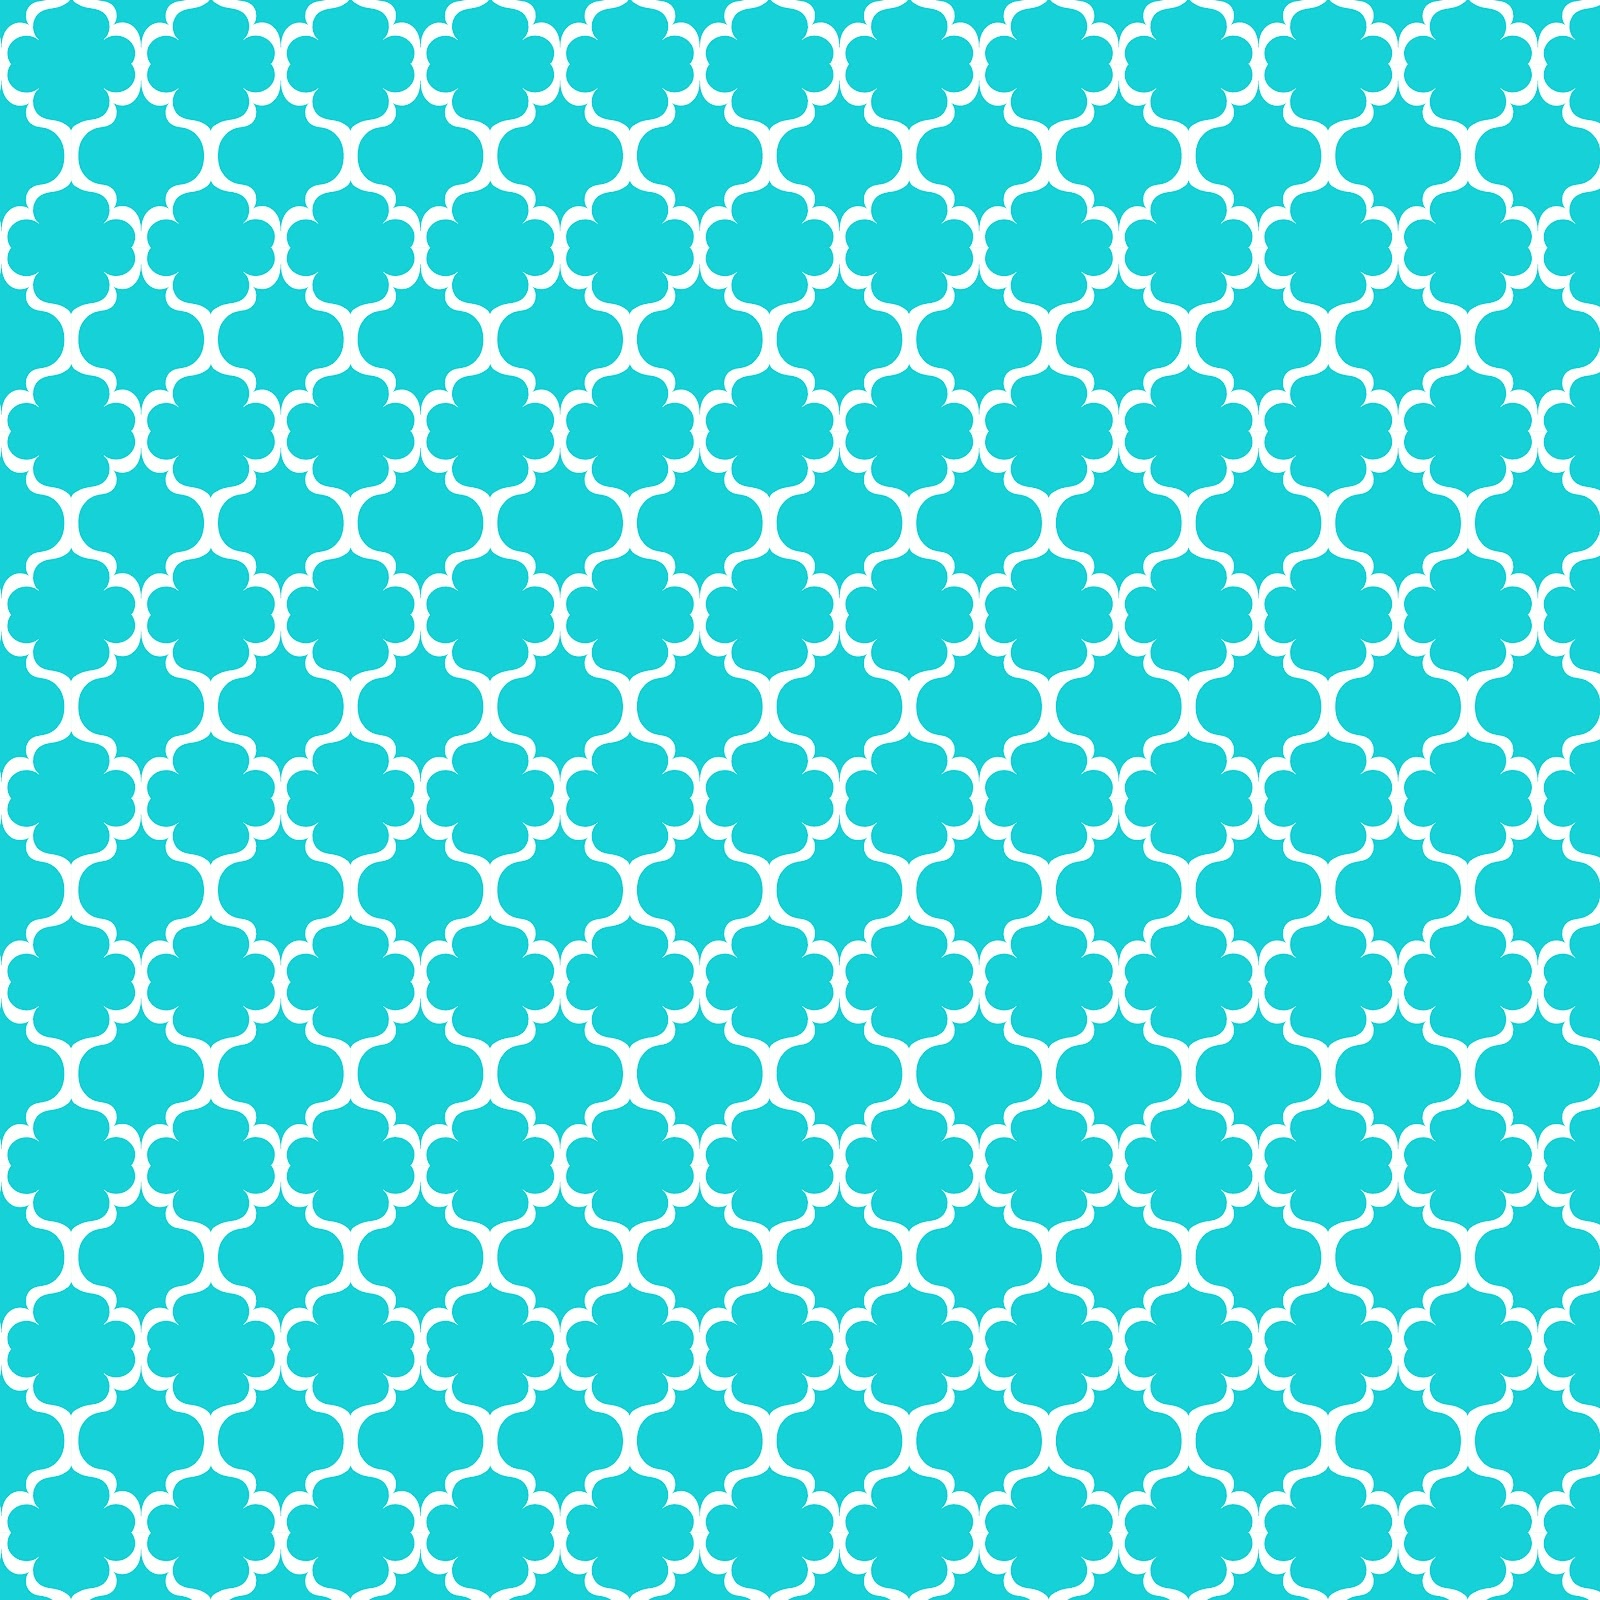 More Free Printable Patterns! - Free Printable Moroccan Pattern